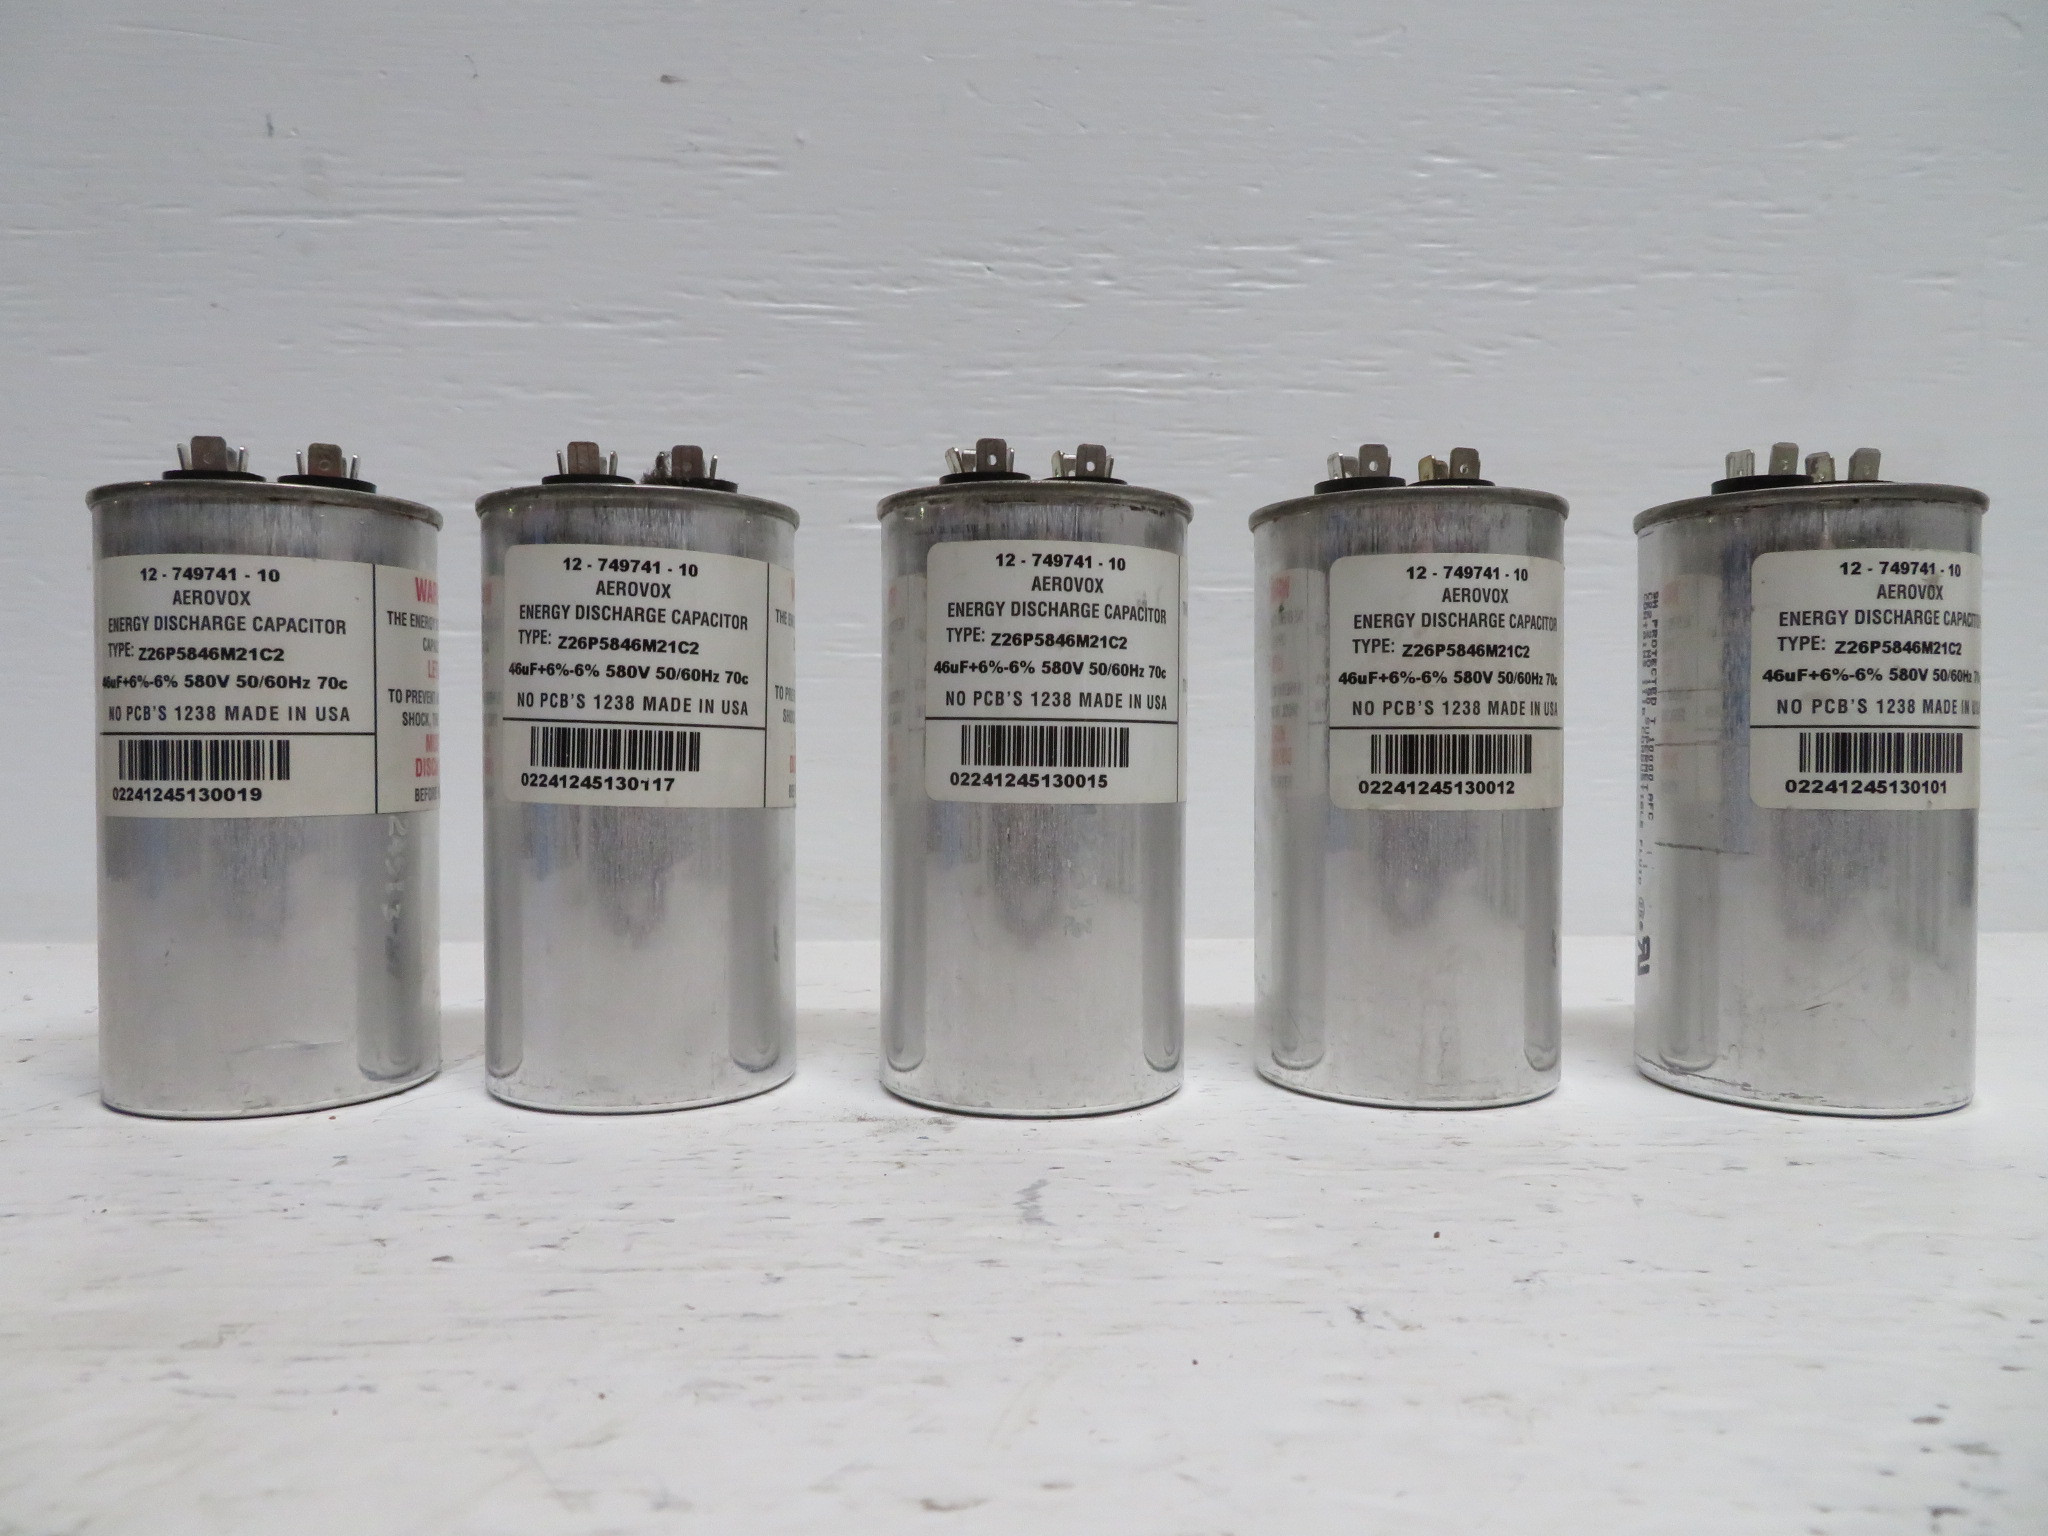 lot of 5 aerovox 12 749741 10 capacitor z26p5846m21c2 46 uf 6 580 vac np2295 3 river city industrial [ 1280 x 960 Pixel ]